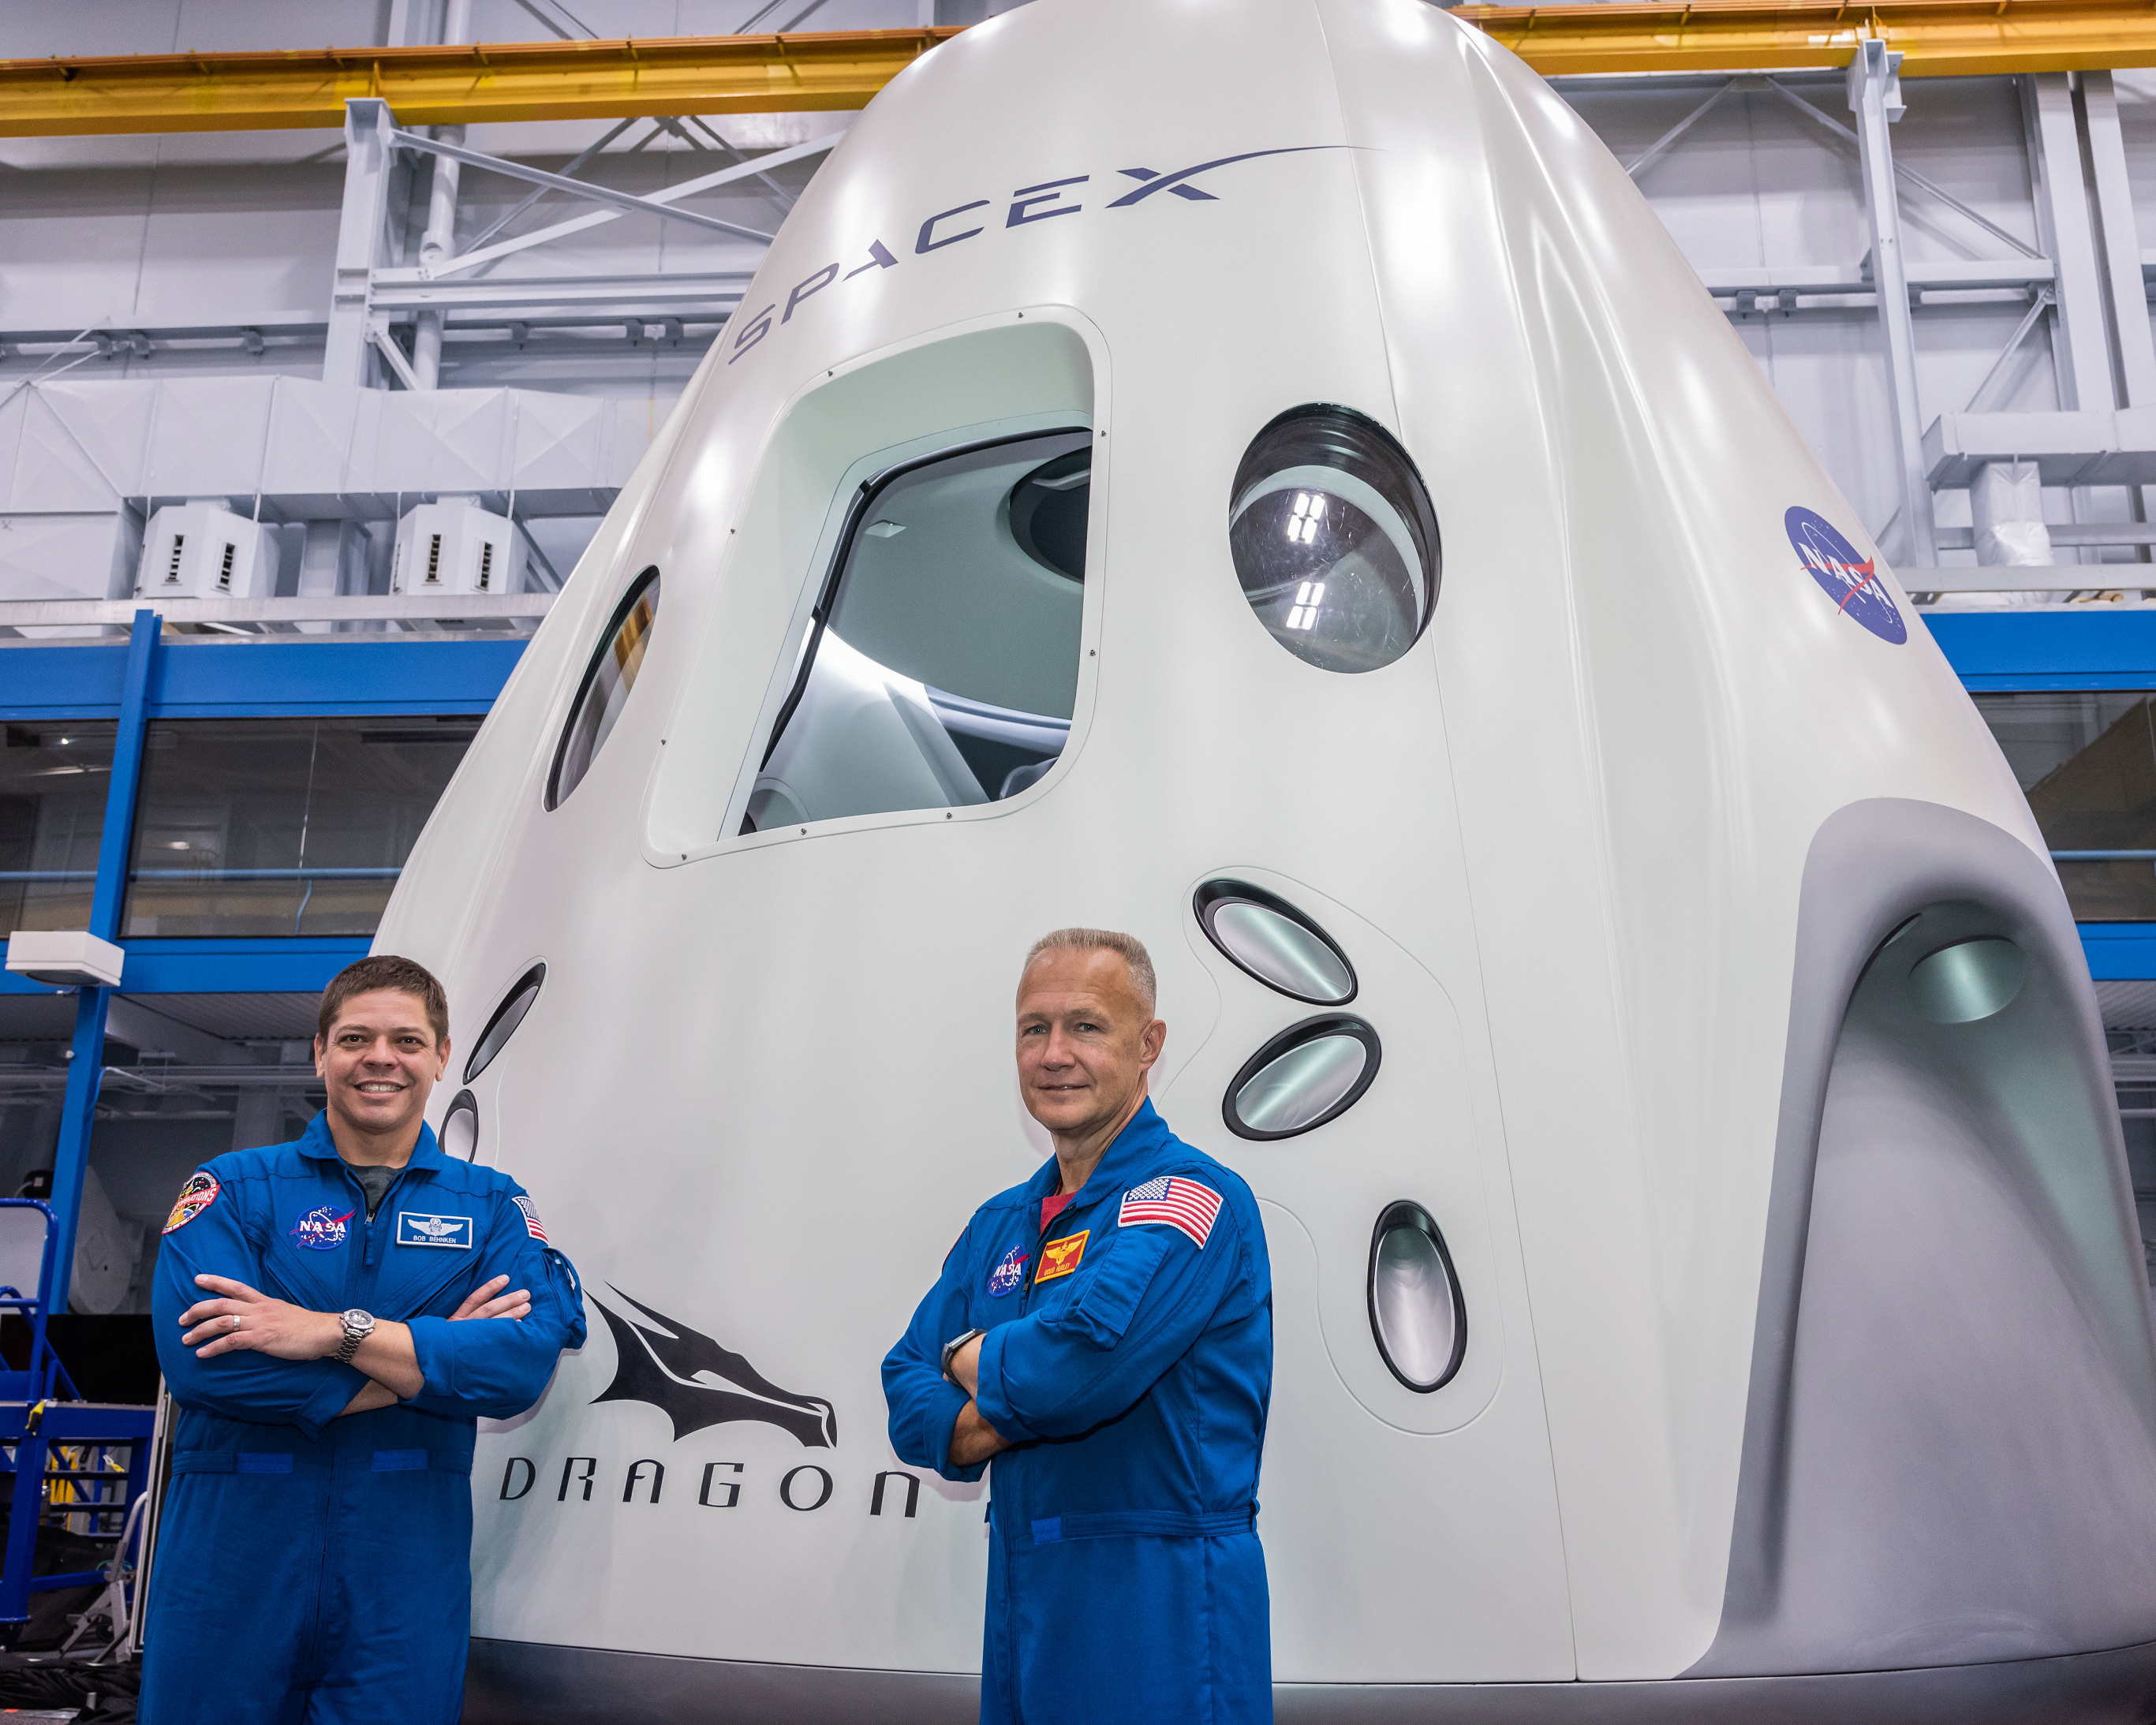 Dragon Shuttle with astronauts